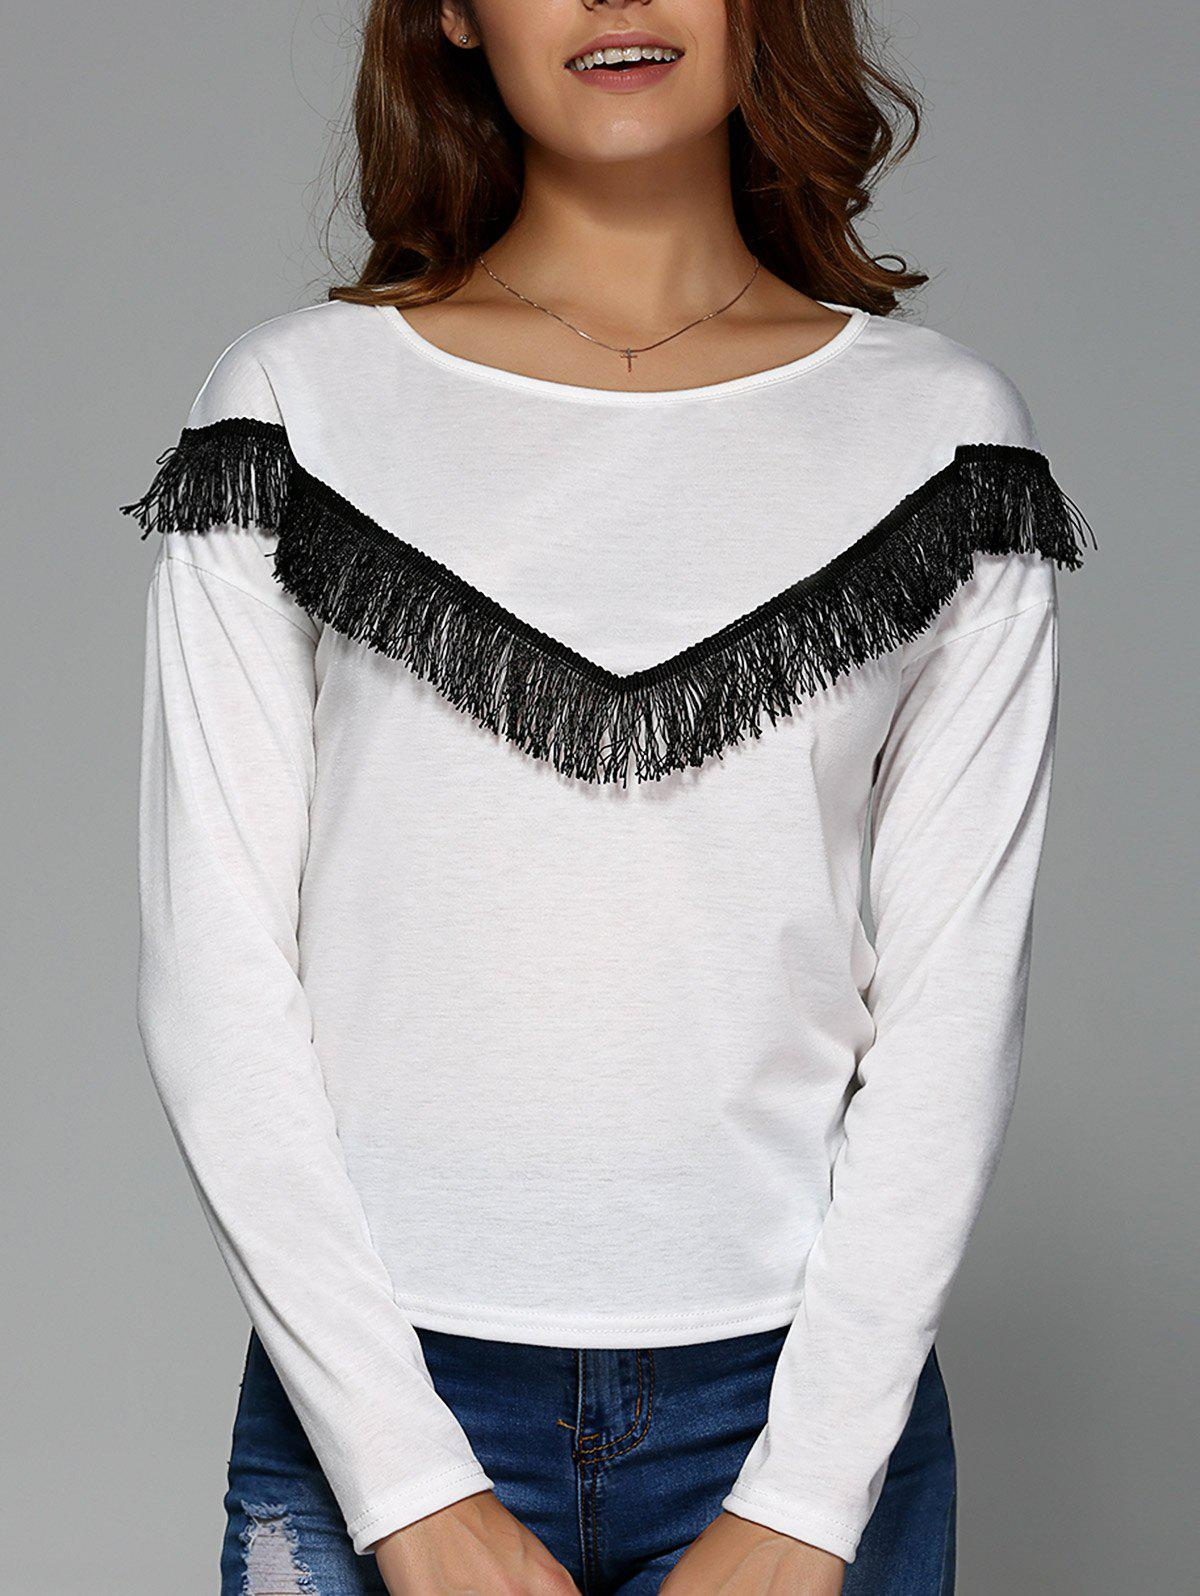 V Fringed Long Sleeve Tee - WHITE S